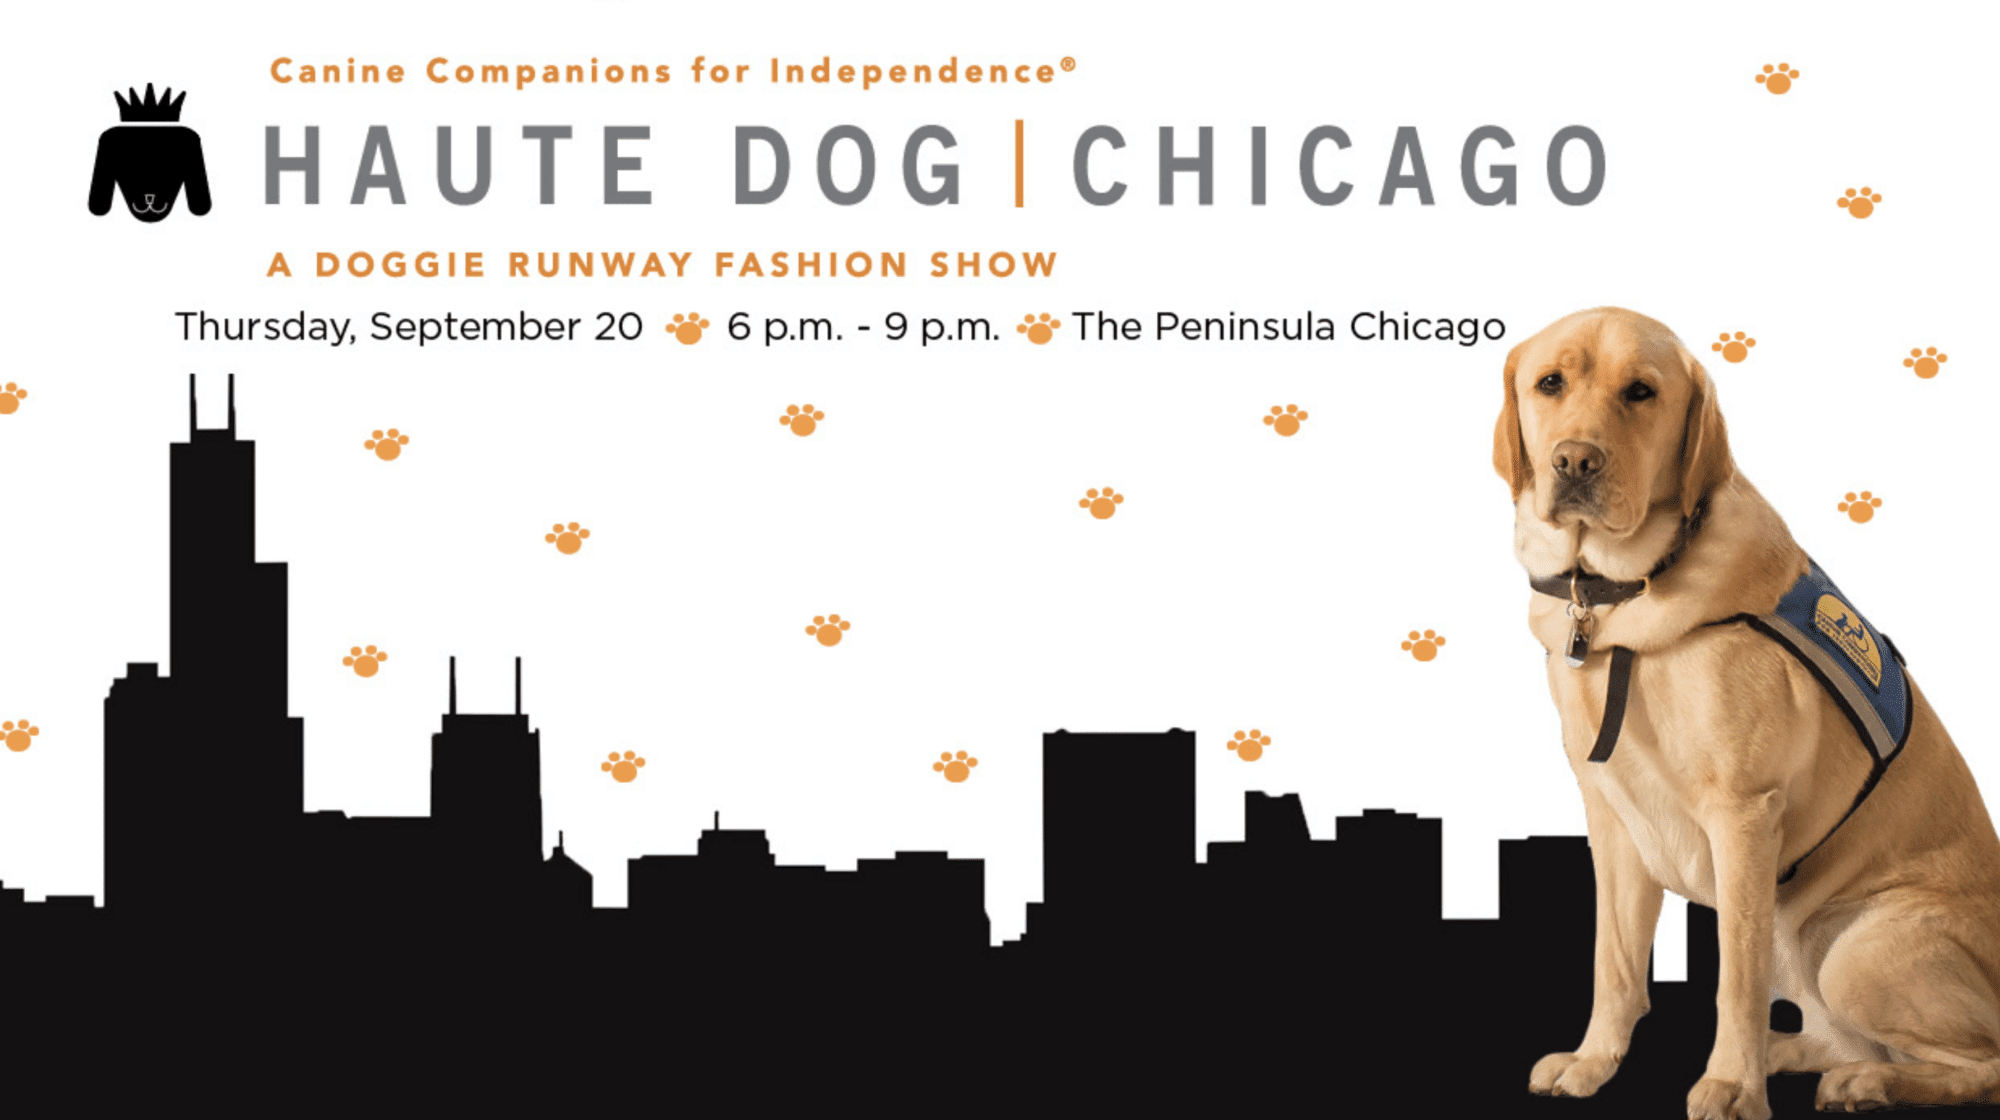 Puppy Mill Awareness Day on WGN radio and Canine Companions for Independence with pet expert Steve Dale